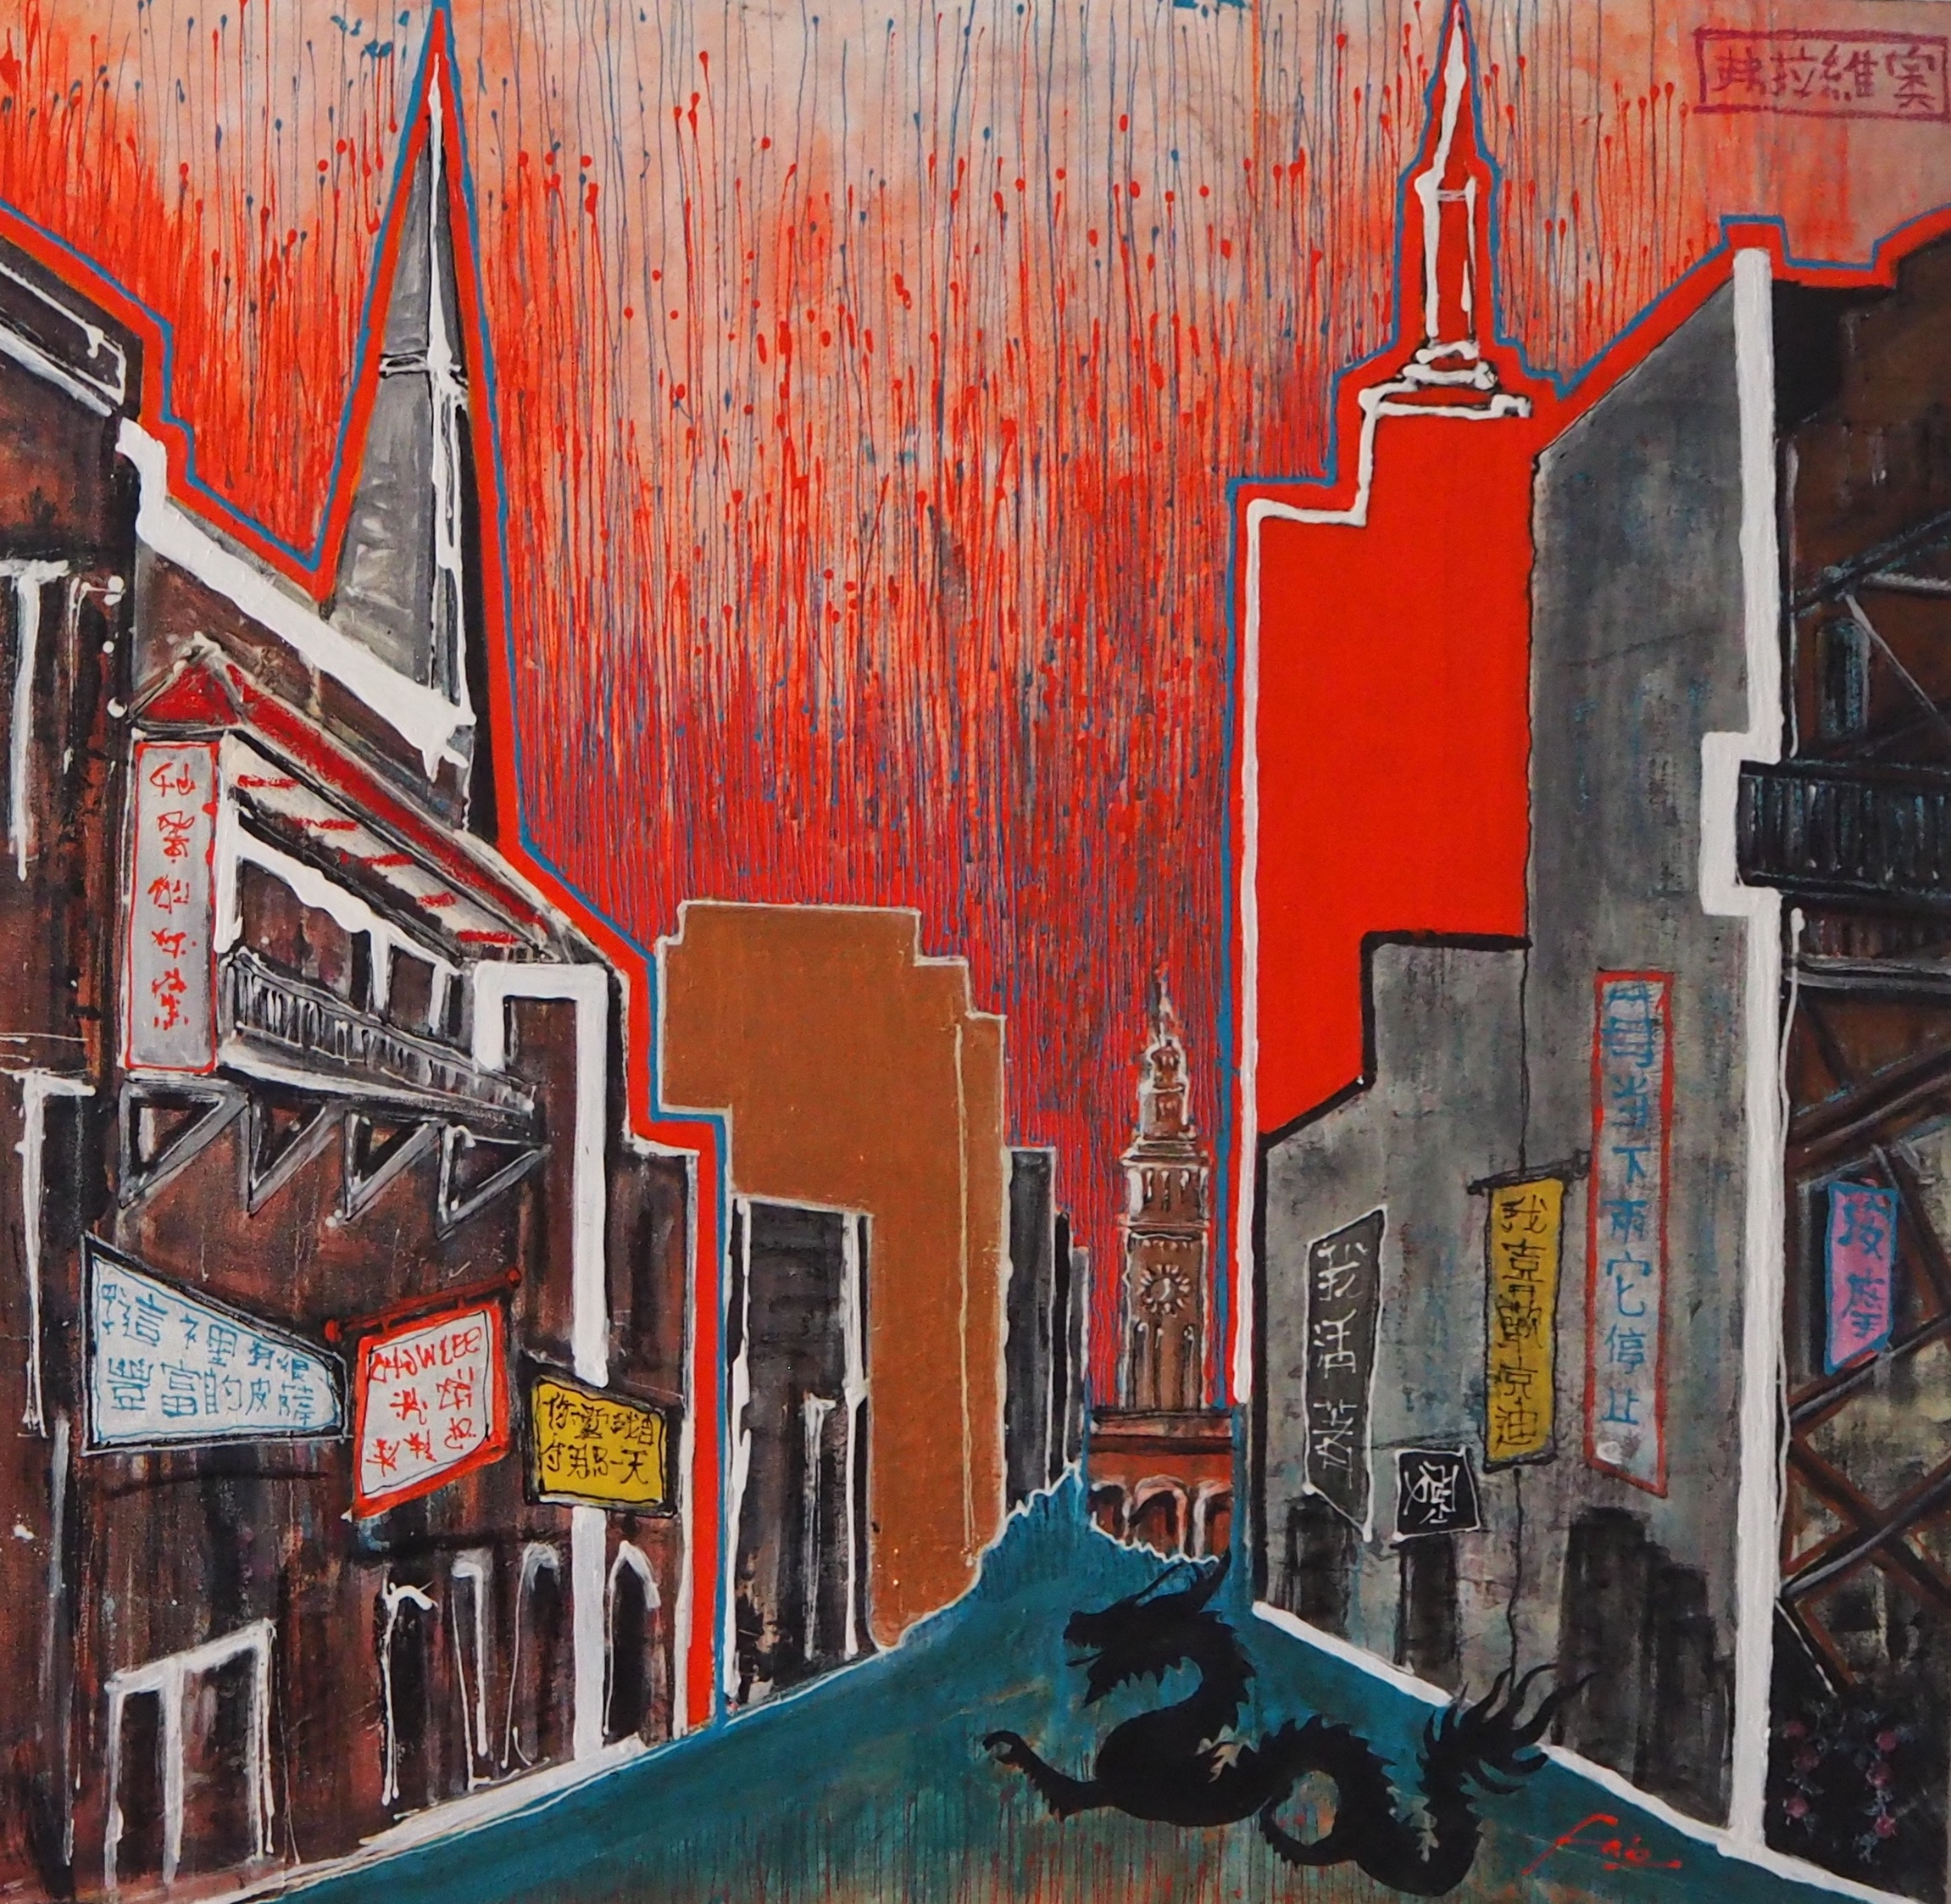 """<b>""""Chinatown""""</b> <span style= """"font-size:14px"""">(2019)</span> <br><p style = """"font-size:14px"""">Acrylic on canvas<br>36 x 36 in.</p>"""